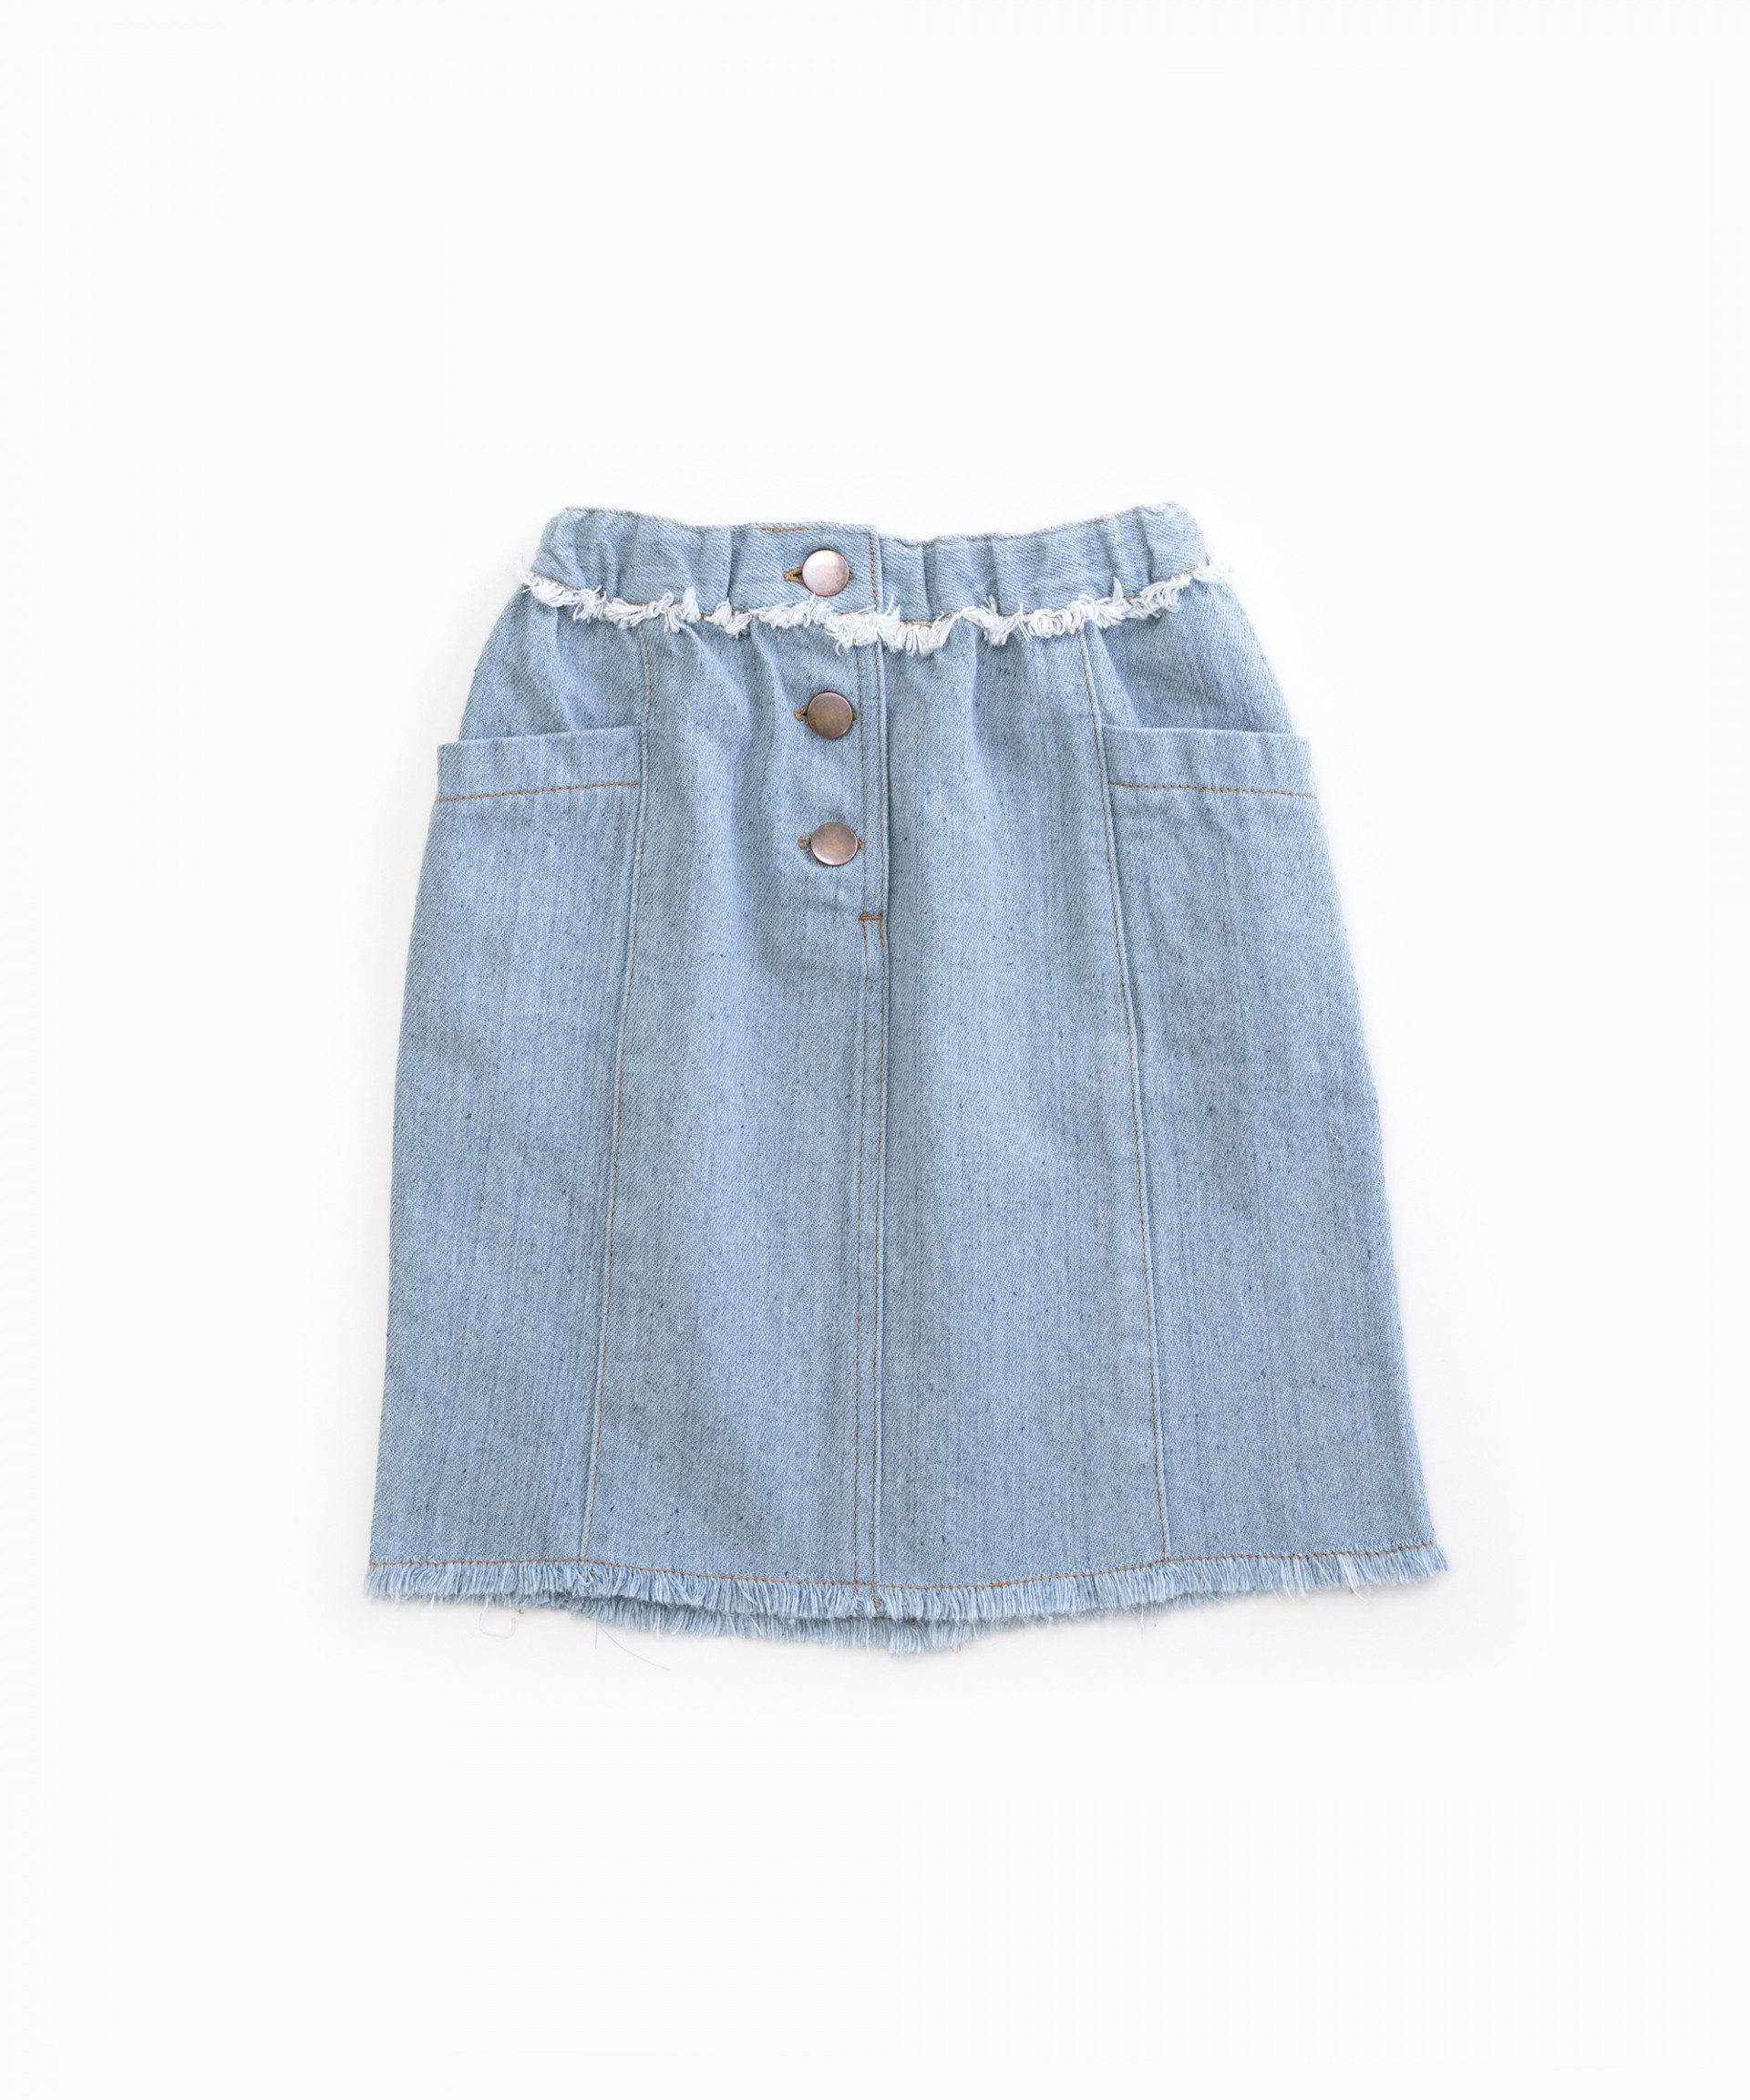 Denim skirt | Woodwork